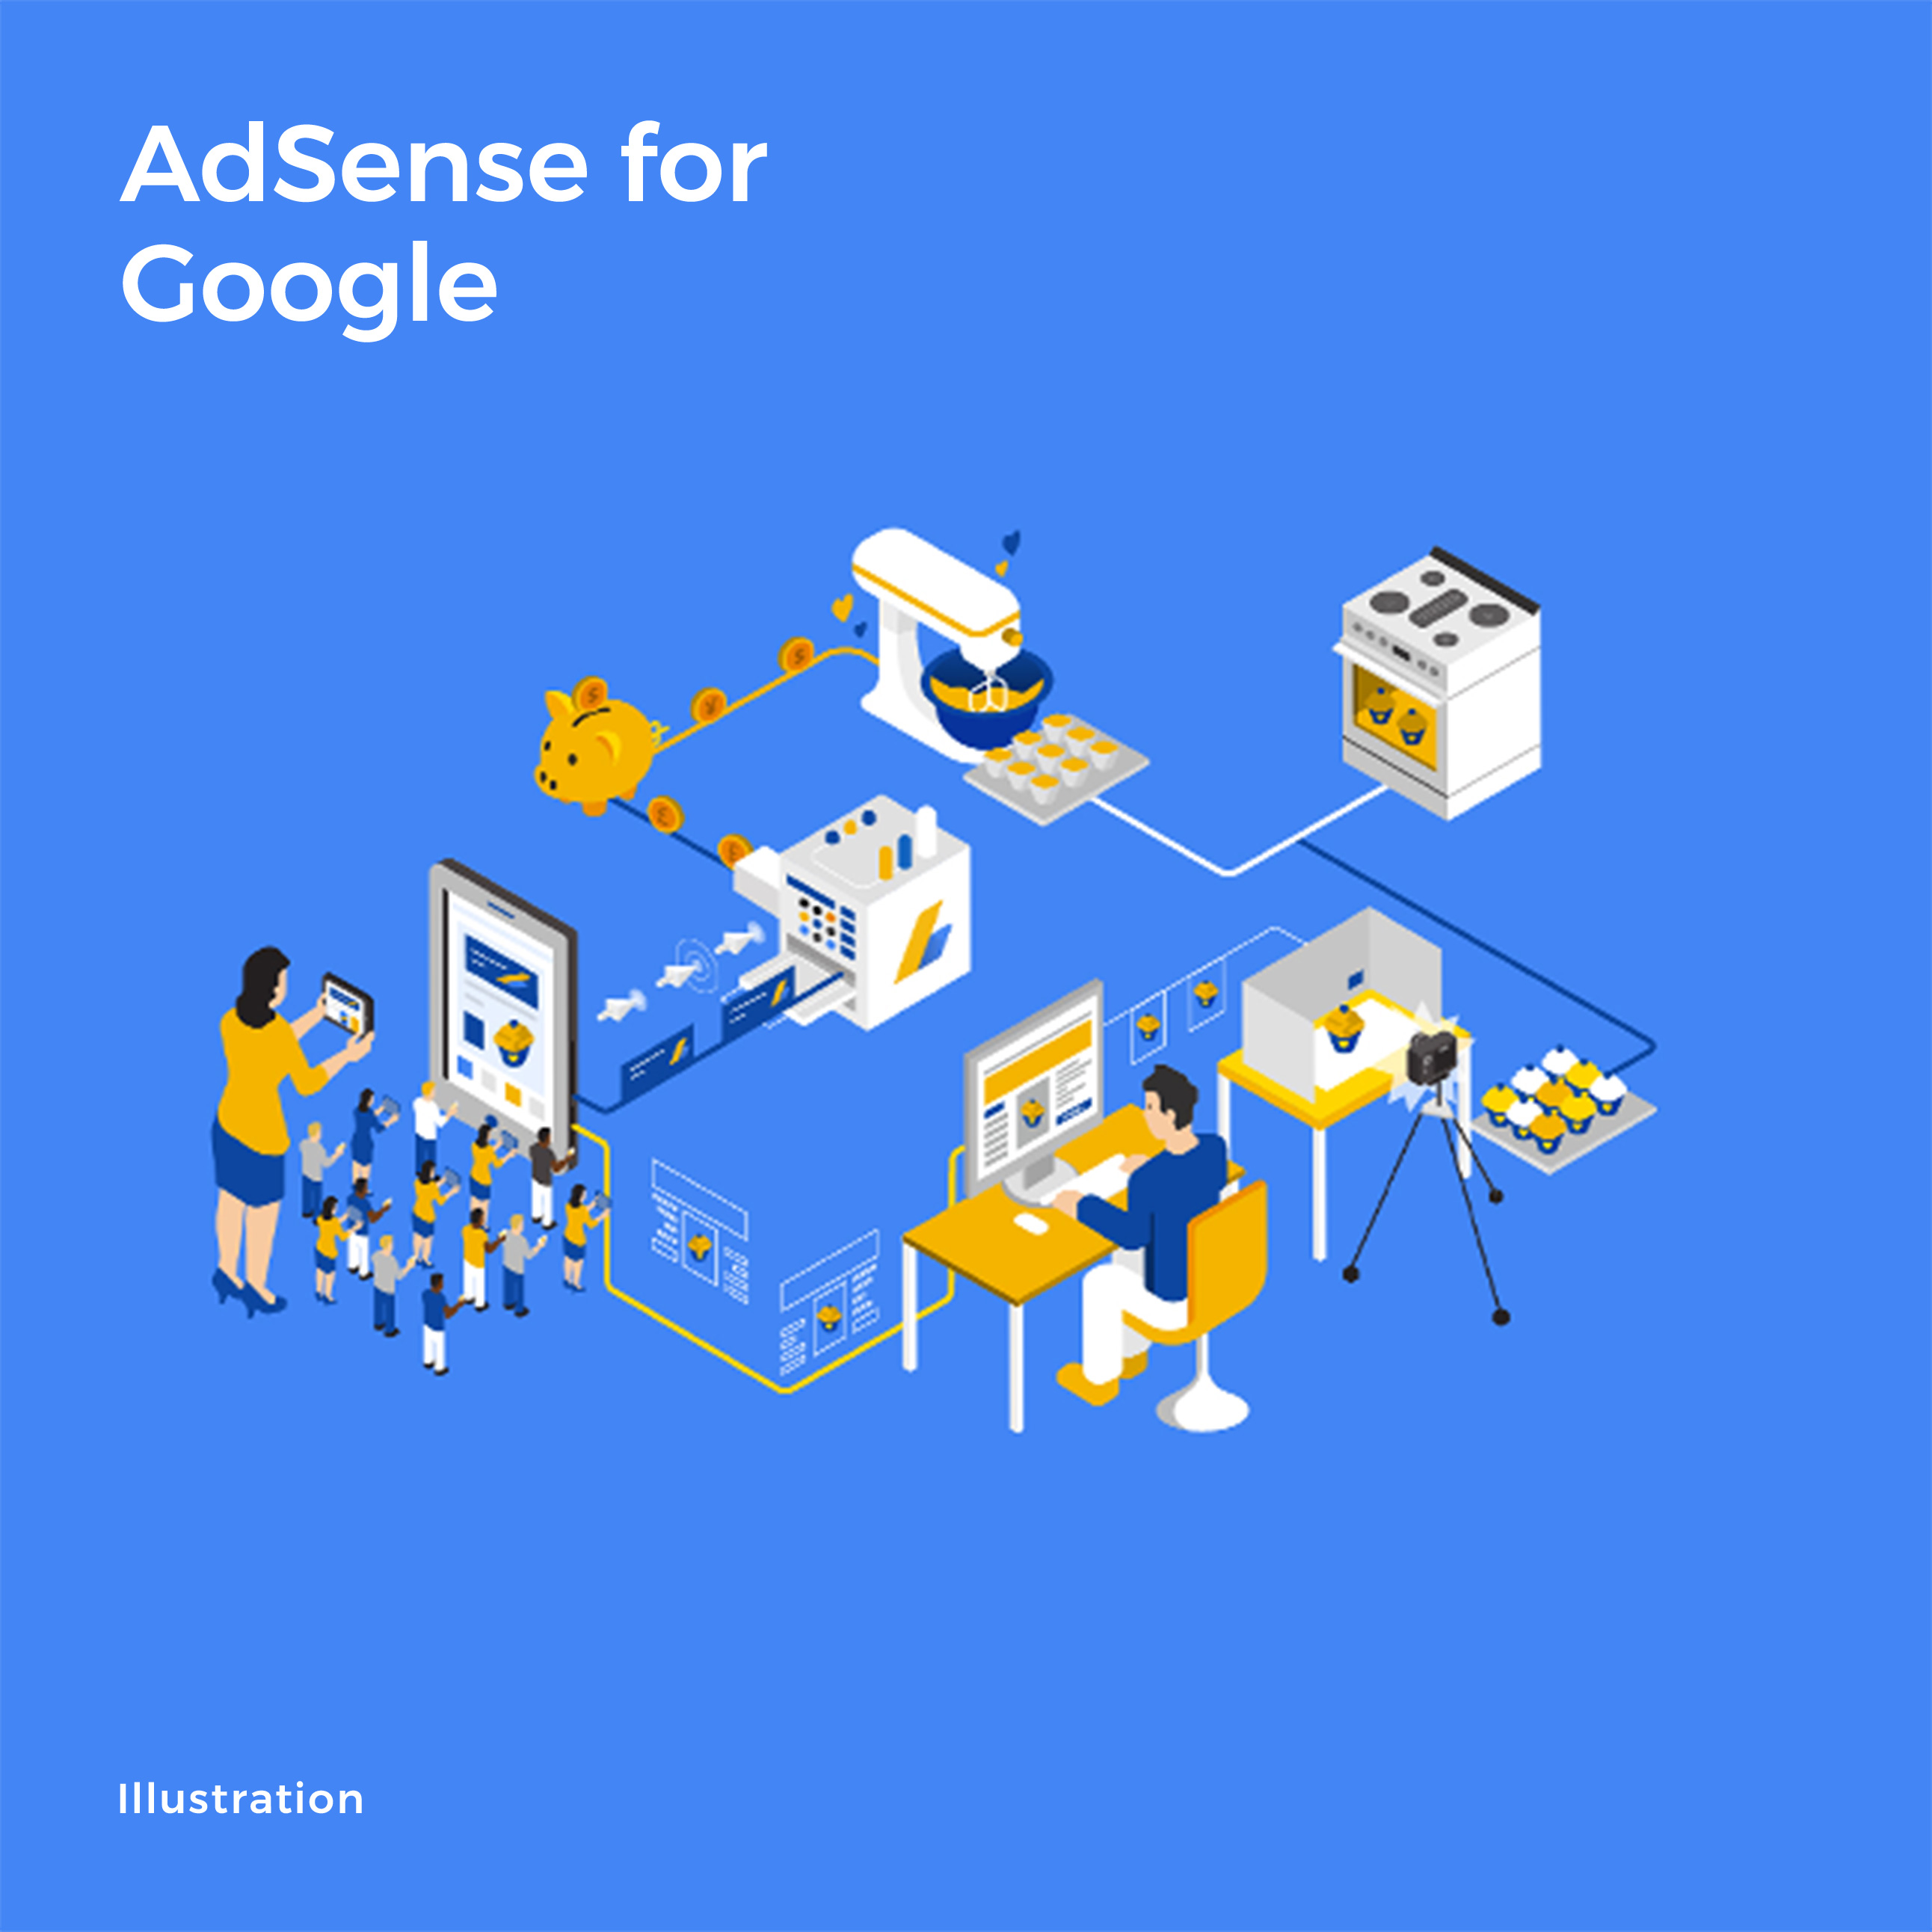 AdSense for Google